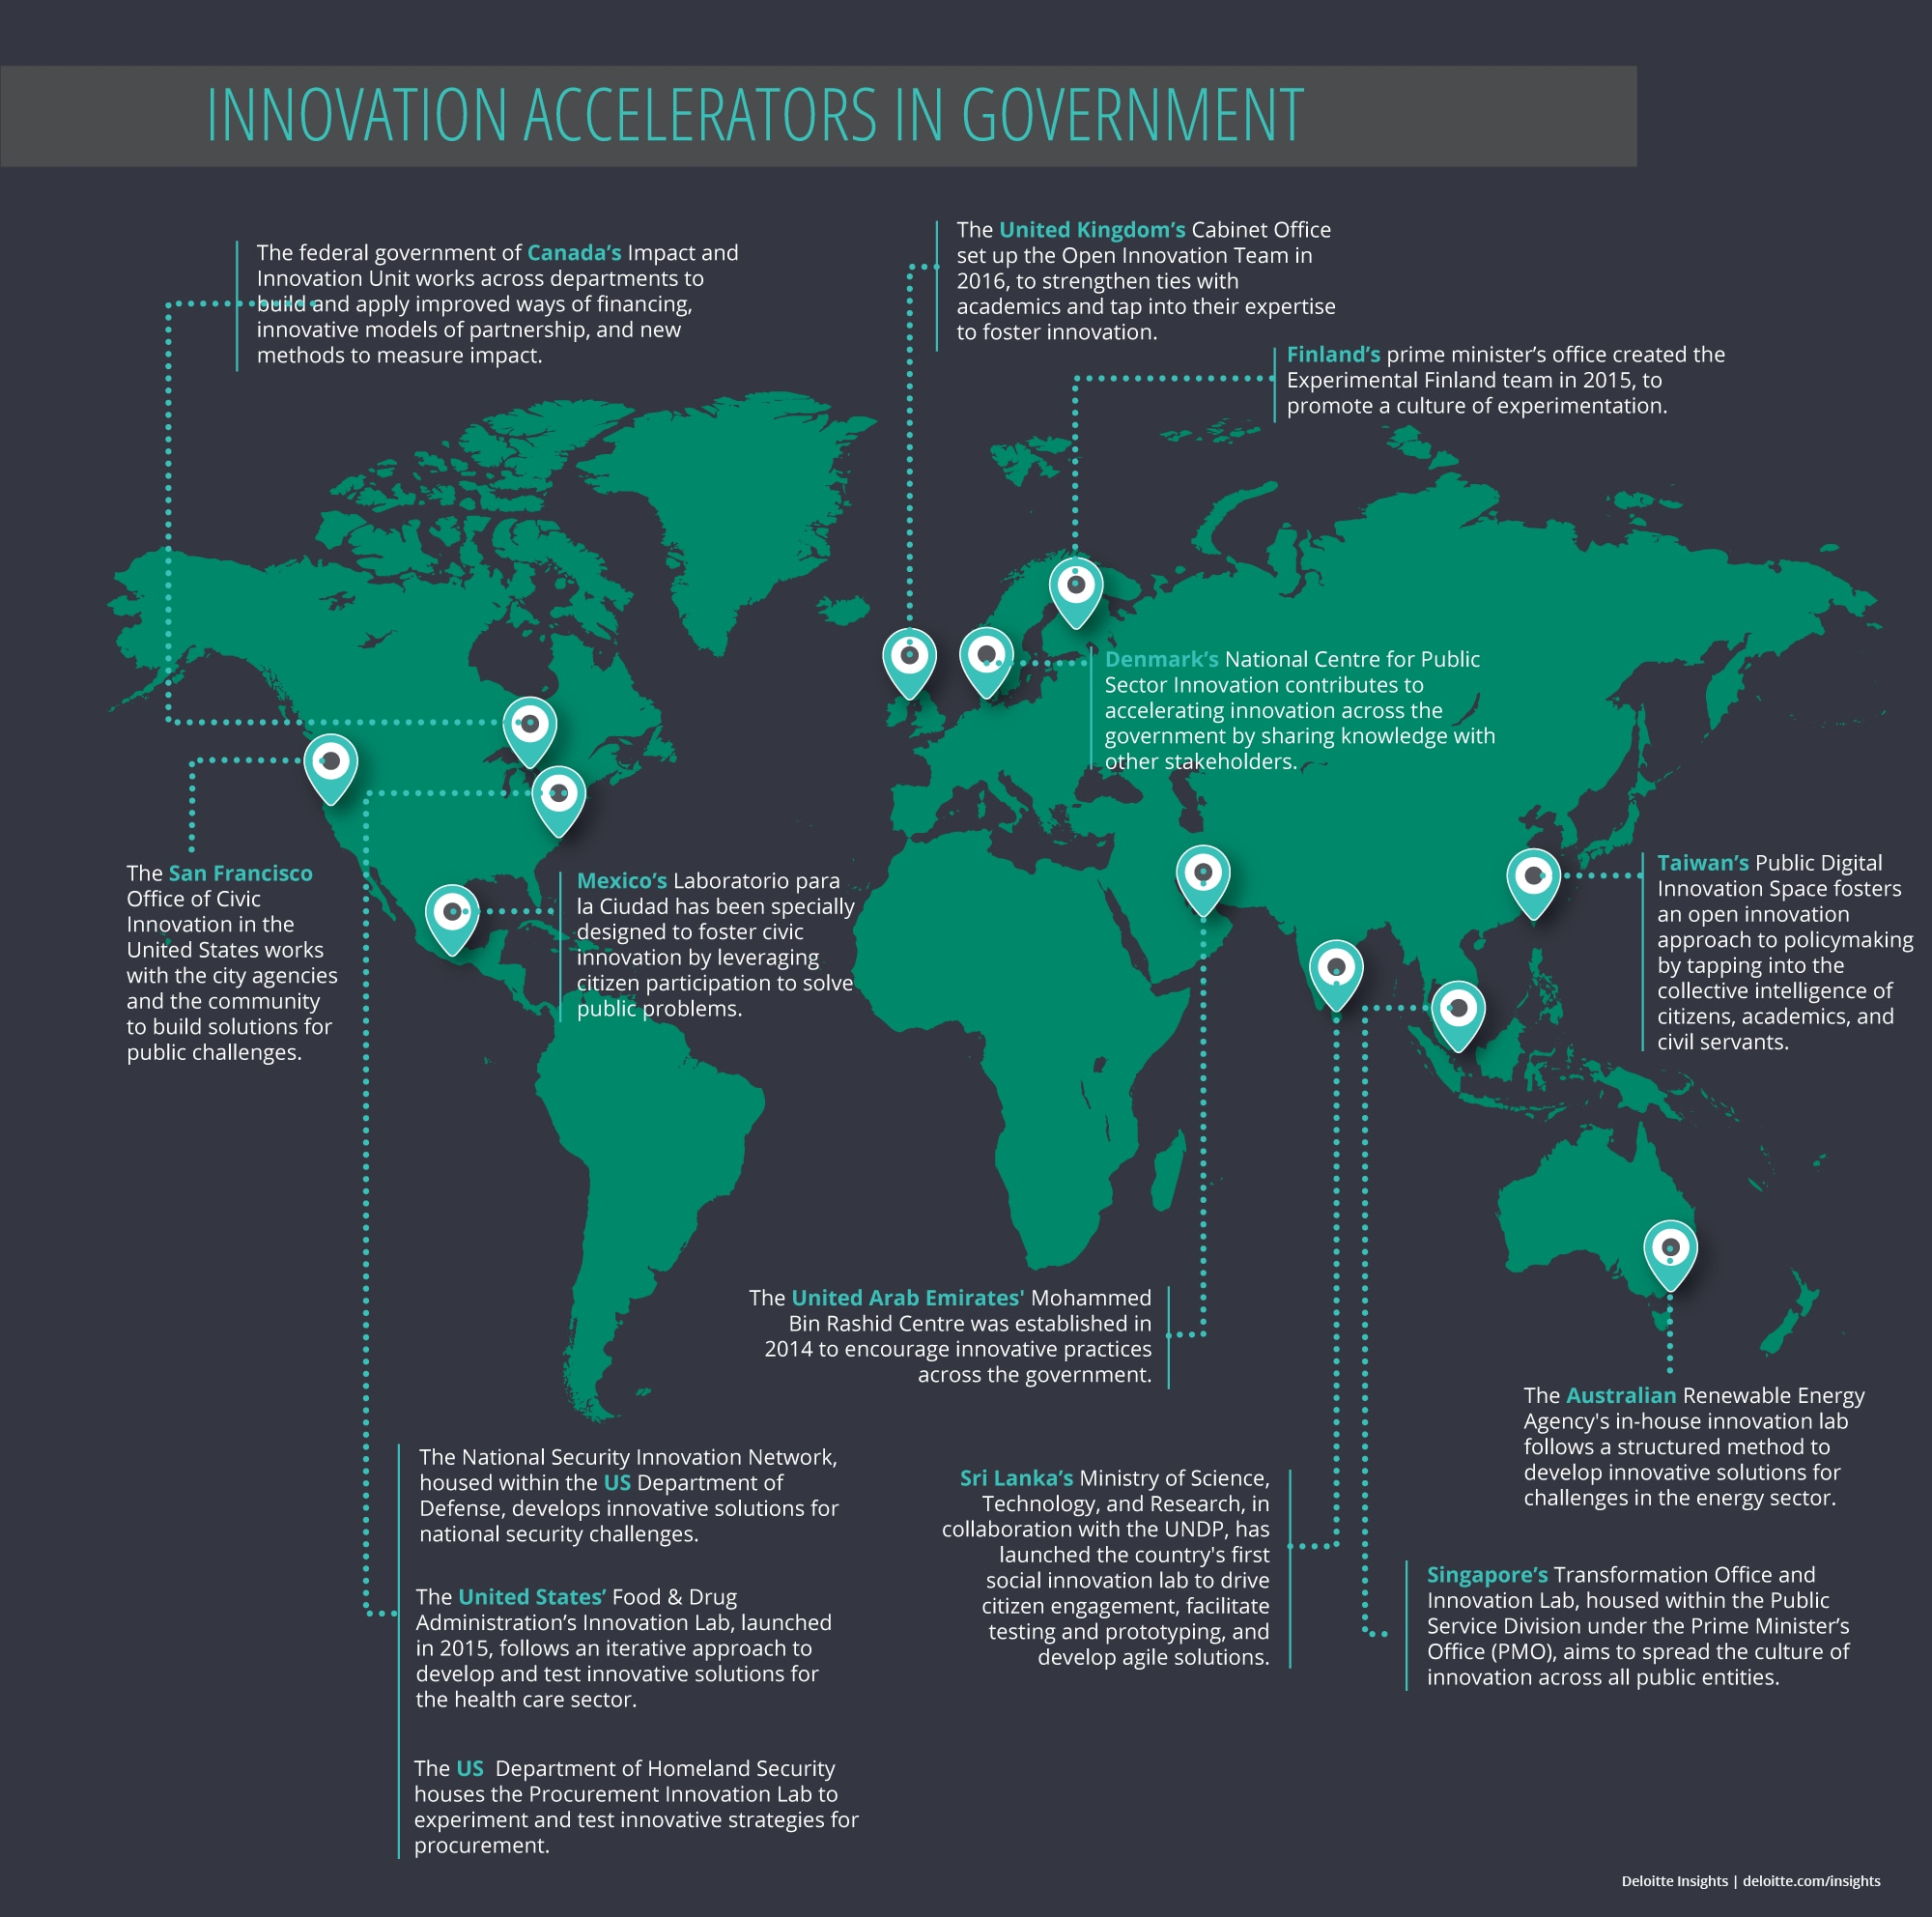 Innovation accelerators in government